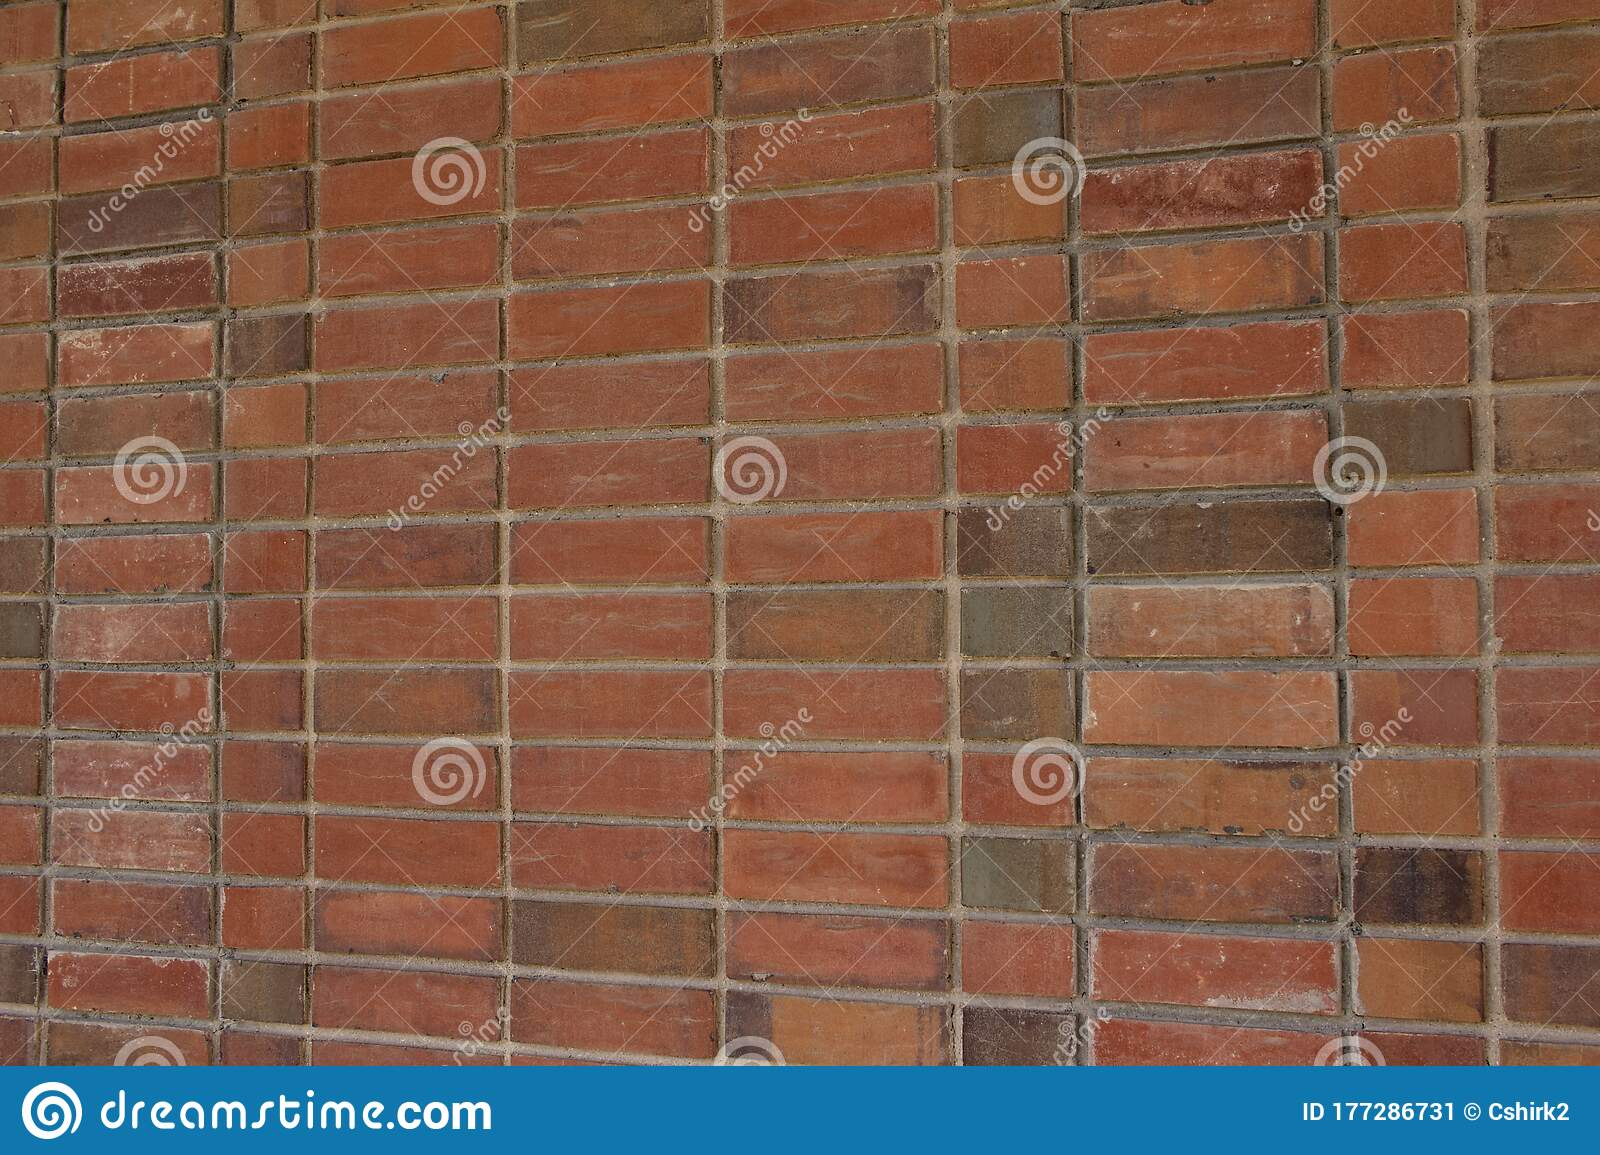 Brick Wall Texture Background With Red And Brown Bricks In A Stack Bond Pattern Stock Image Image Of Bricks Close 177286731